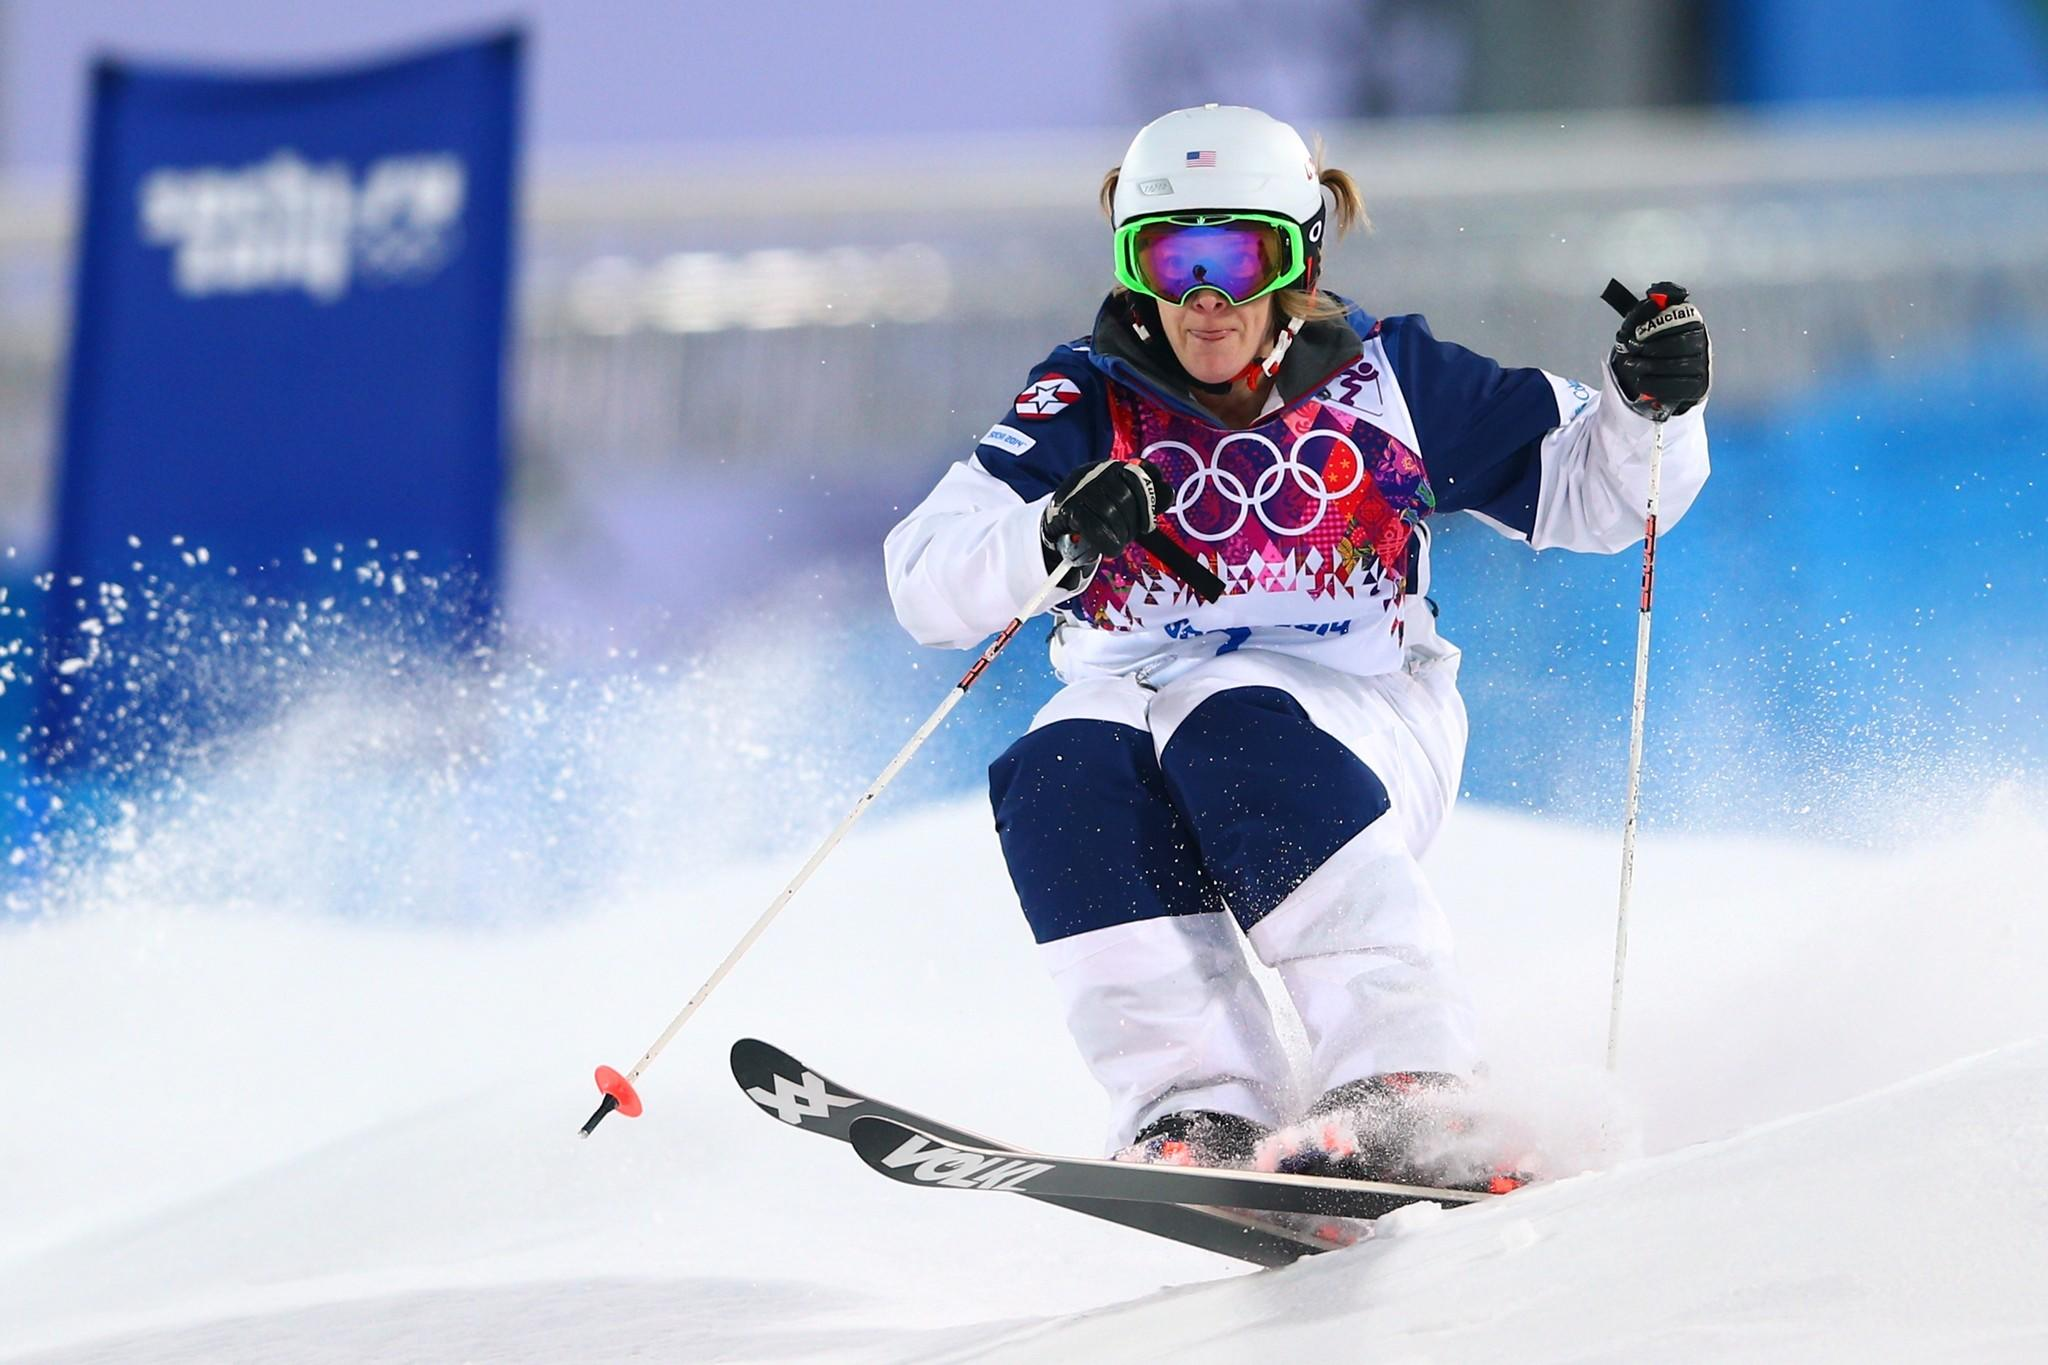 Hannah Kearney of the United States competes in the Ladies' Moguls Qualification during the Sochi 2014 Winter Olympics at Rosa Khutor Extreme Park.